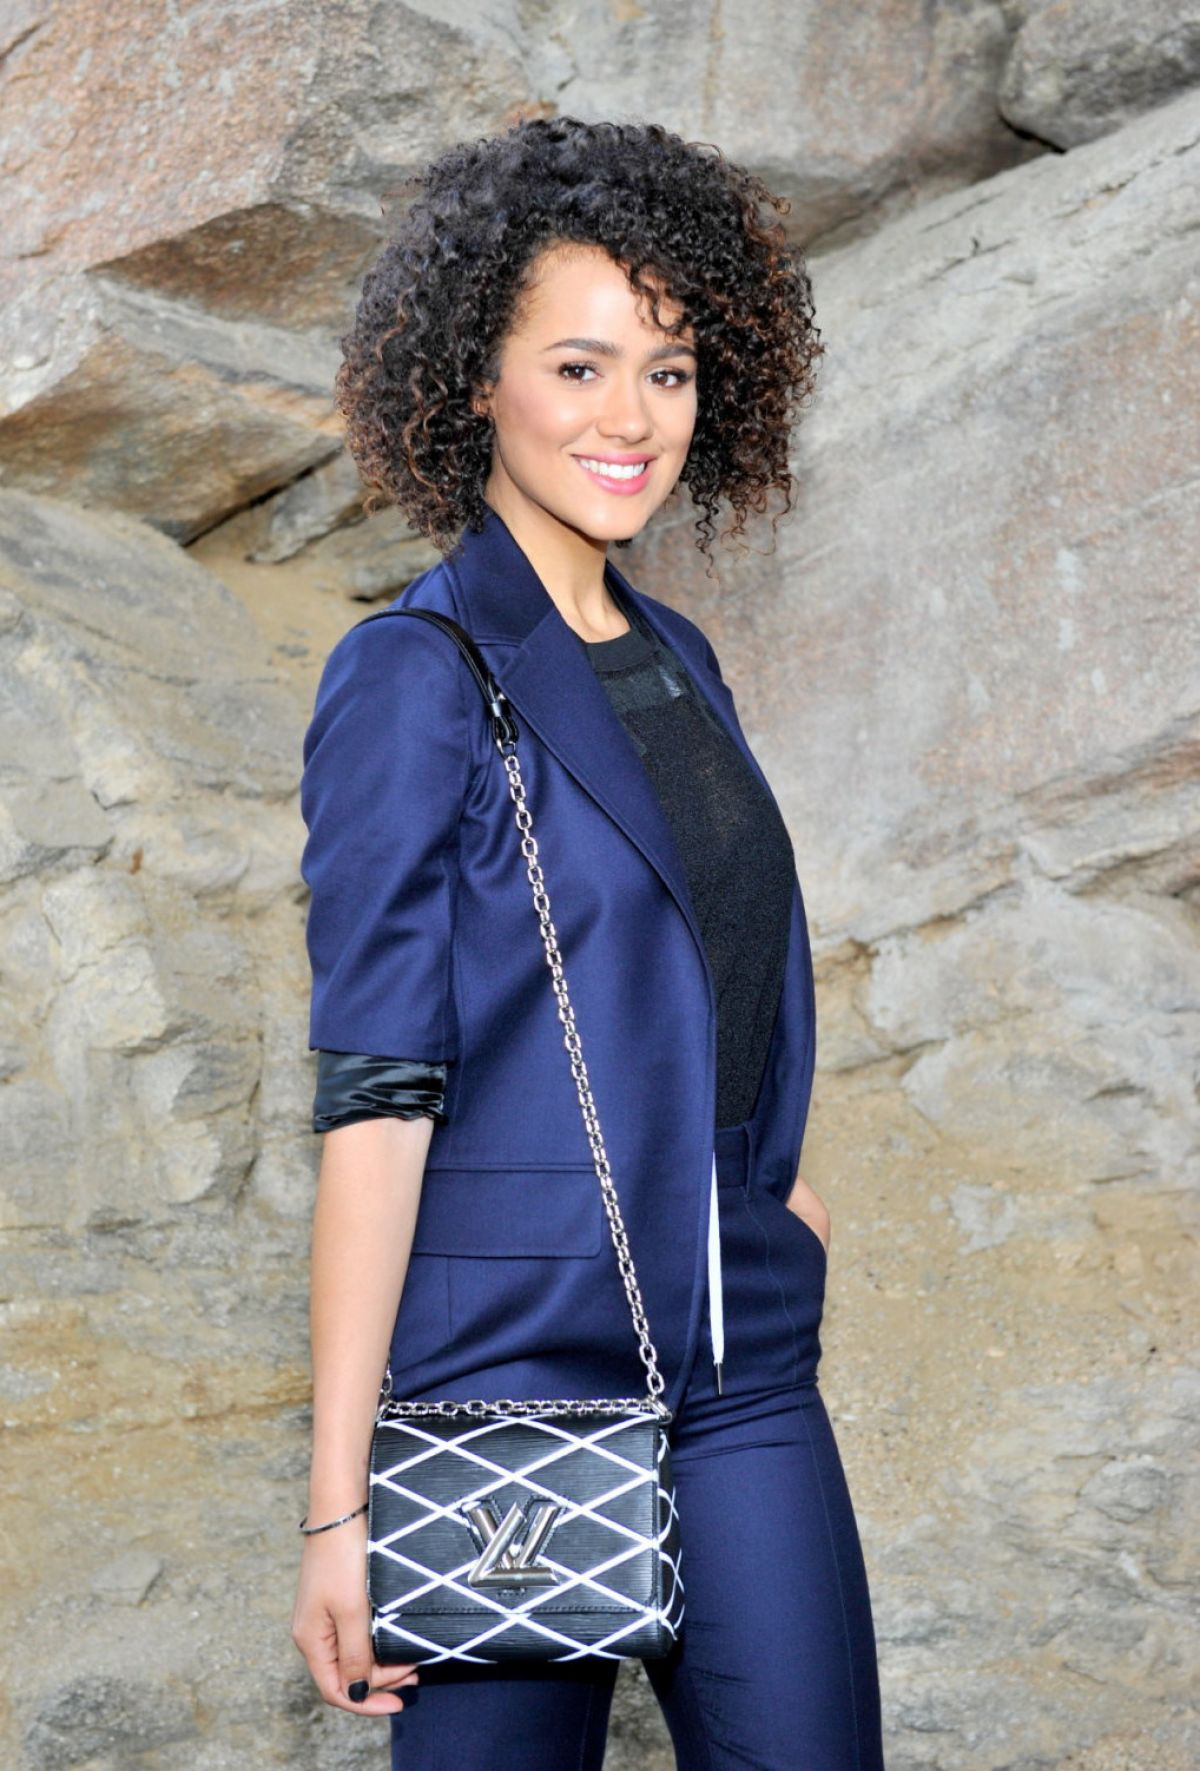 NATHALIE EMMANUEL at Louis Vuitton Cruise 2016 Resort Collection in Palm Springs